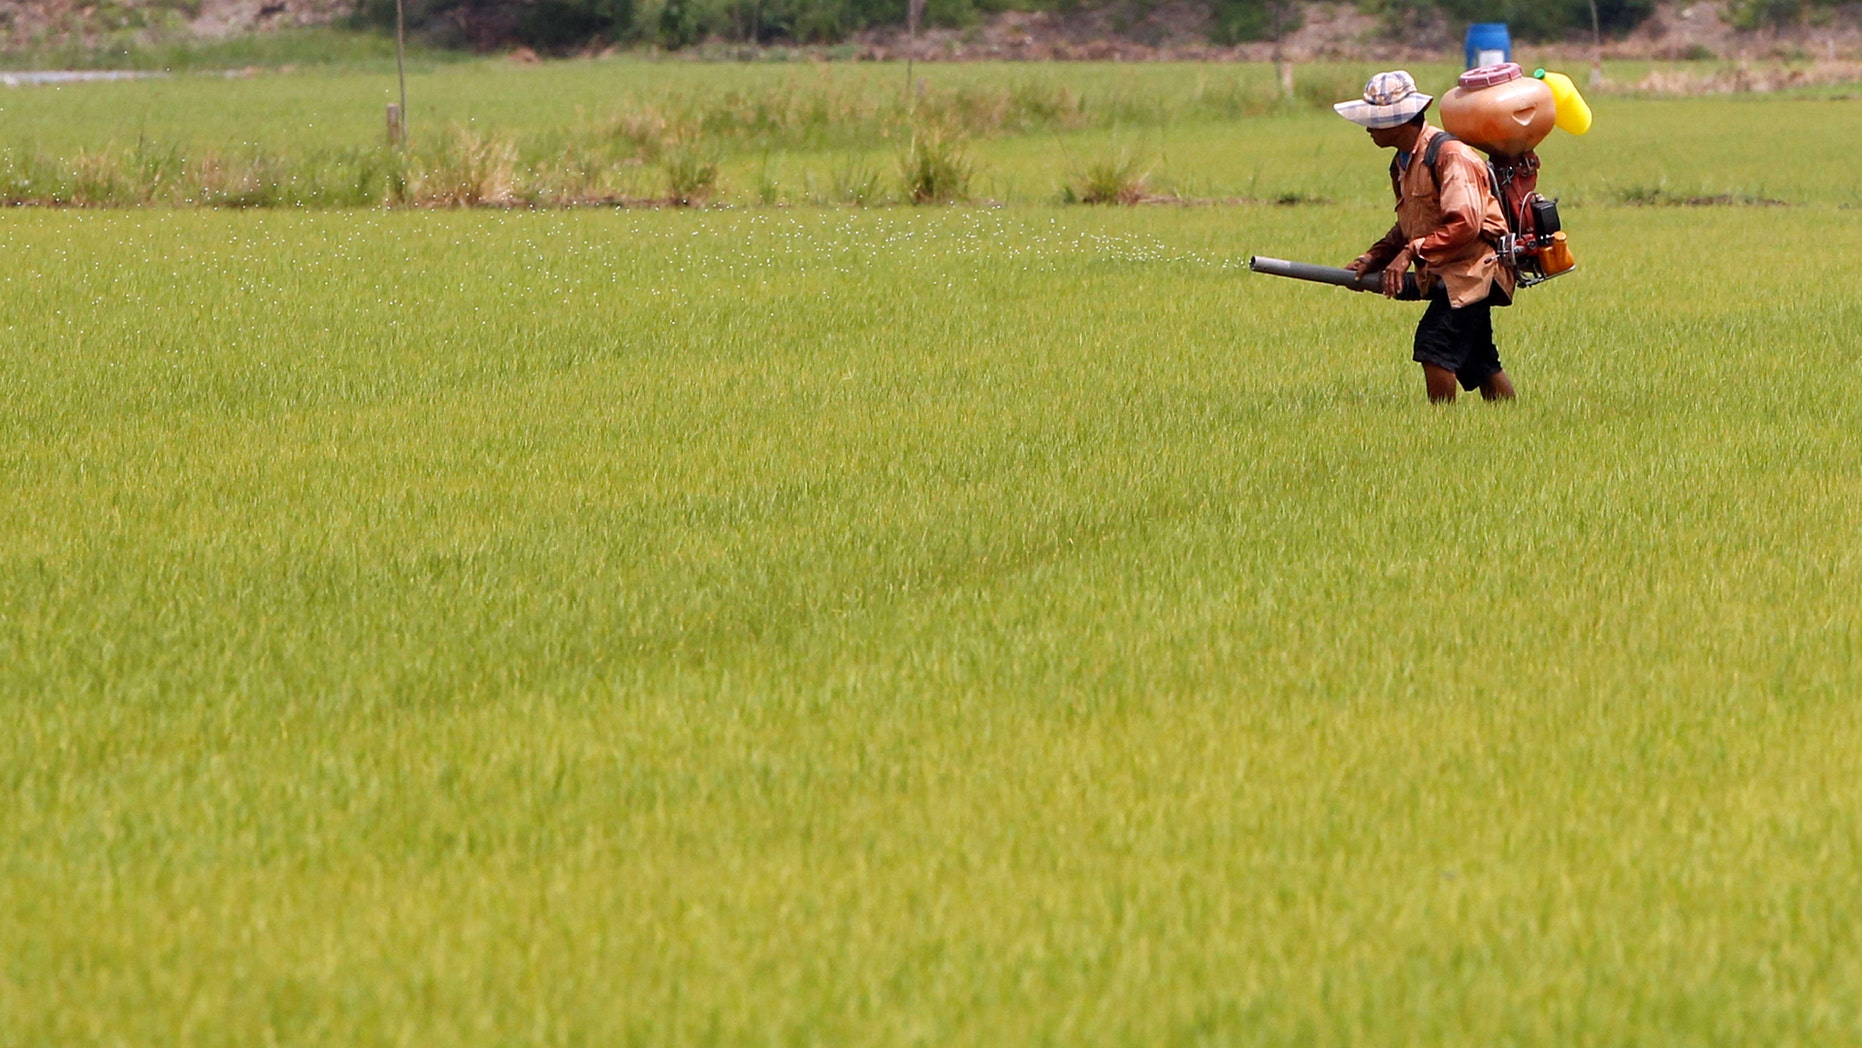 File photo: A farmer sprays pesticide over his rice field in Nonthaburi province, on the outskirts of Bangkok, Thailand, June 8, 2017. (REUTERS/Chaiwat Subprasom)